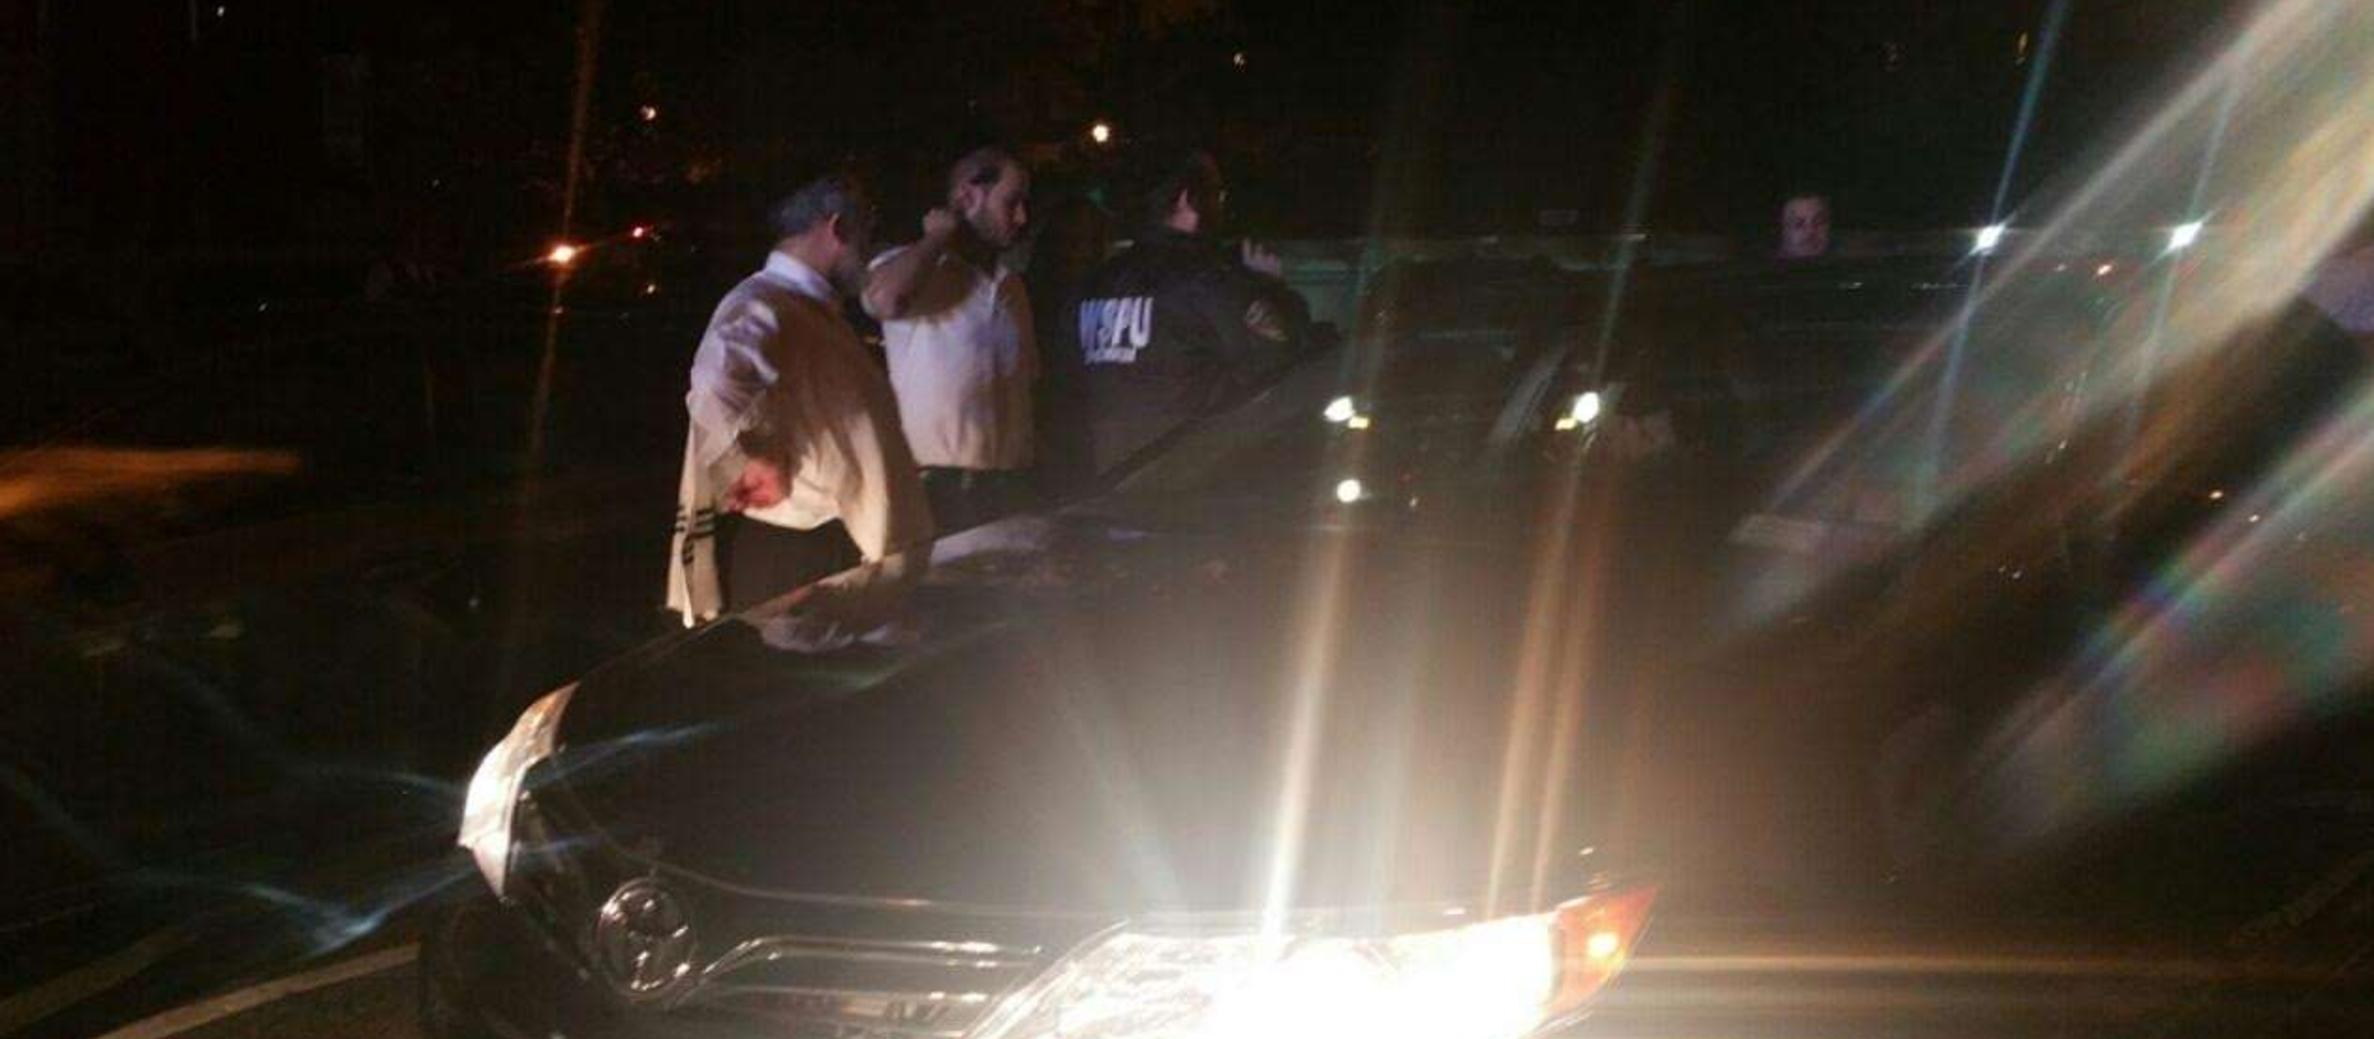 US: Orthodox Jewish man attacked in yet another hate crime incident in New York